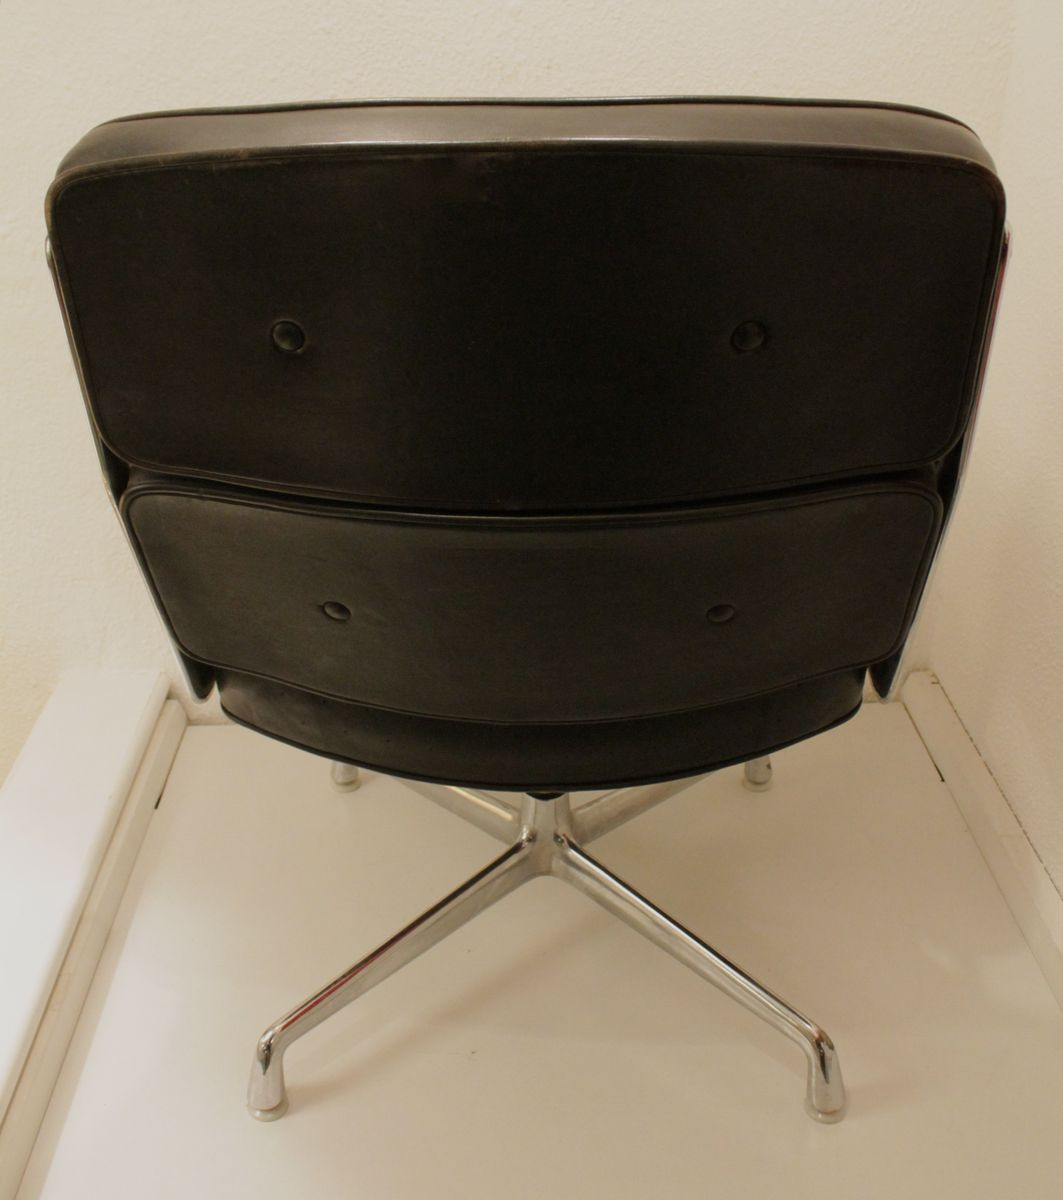 Vitra lounge chair amp ottoman white version von charles amp ray eames - Vitra Lounge Chair Amp Ottoman White Version Von Charles Amp Ray Eames Lobby Chair By Download